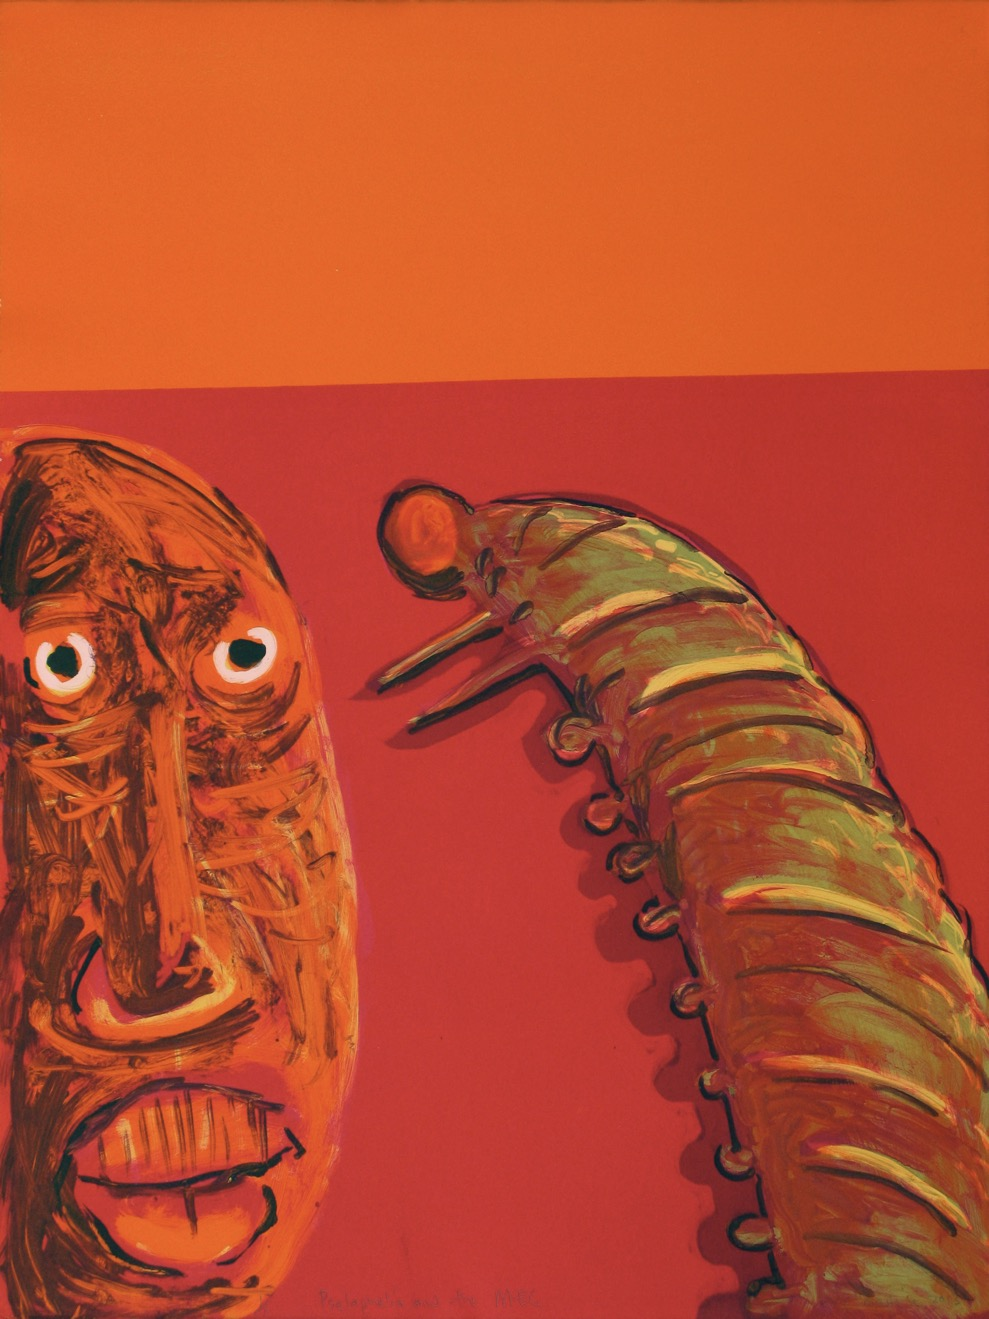 A man's face and a huge caterpillar facing each other in intense reds and orange colours.